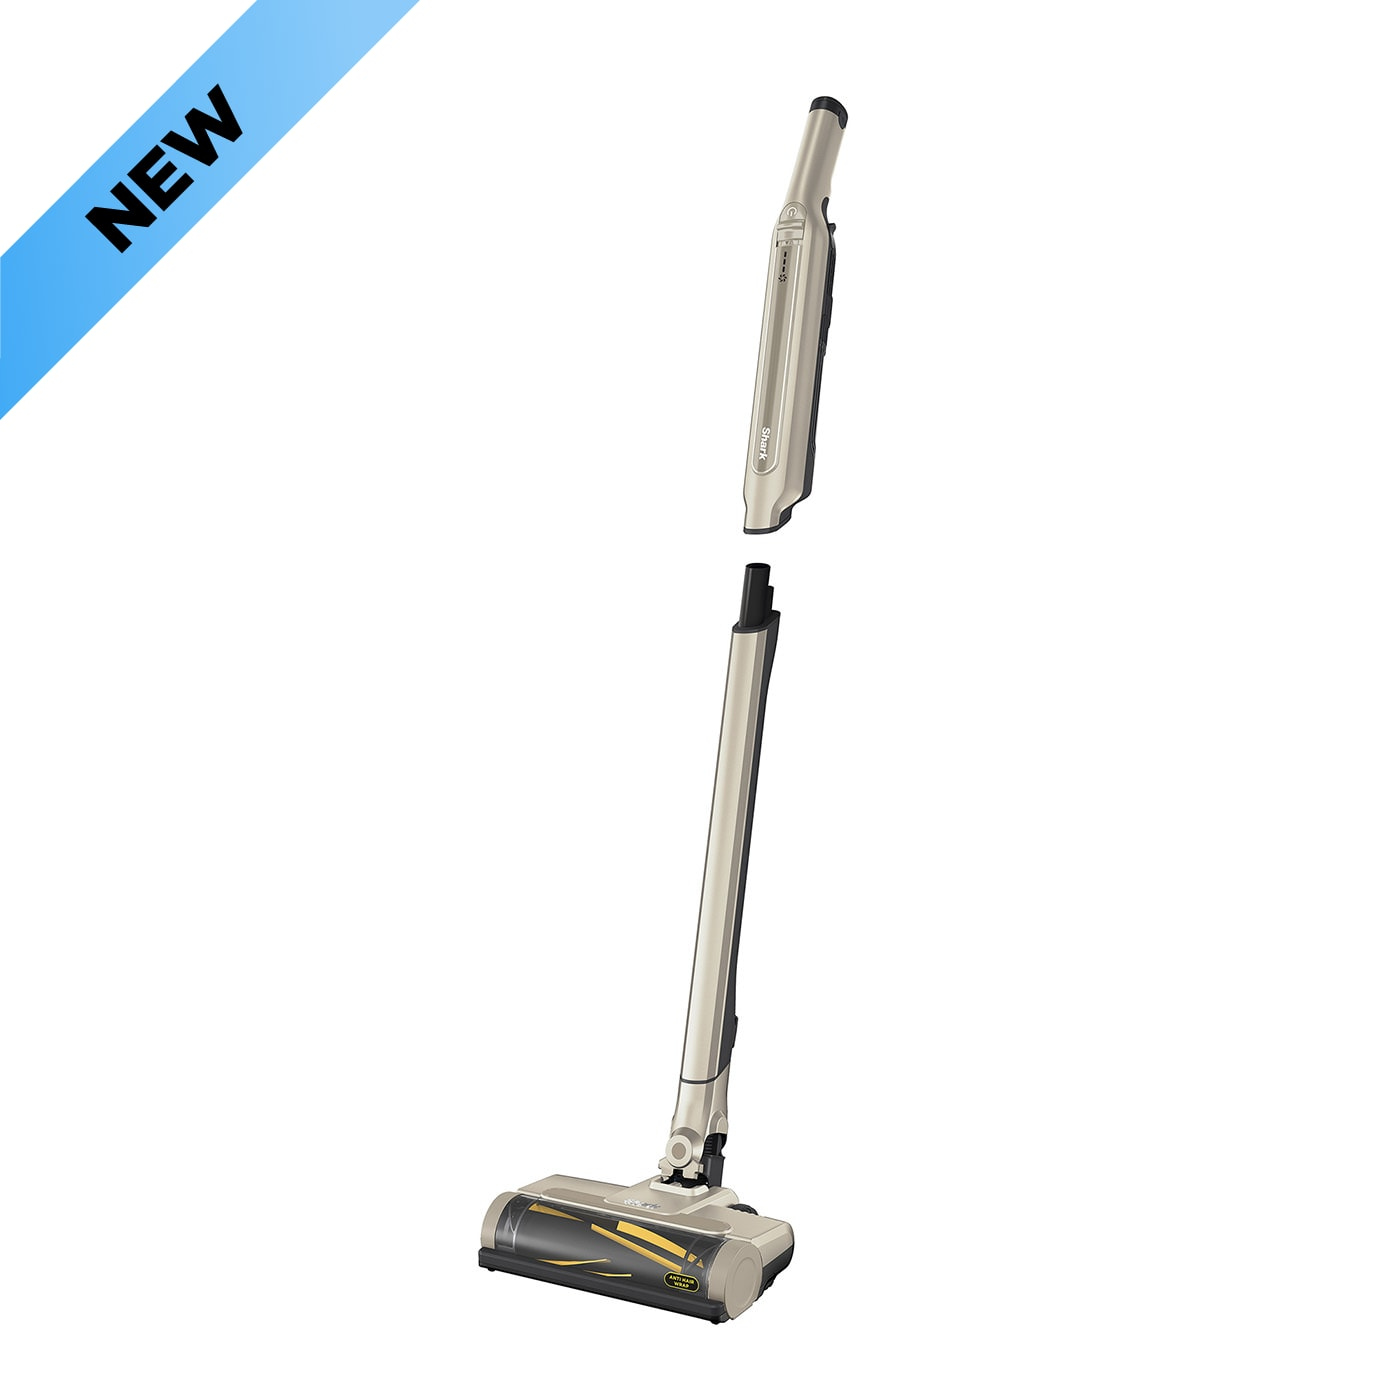 Shark WandVac System 2-in-1 Cordless Vacuum Cleaner with Anti Hair Wrap [Single Battery] WV361GDUK – Gold product photo